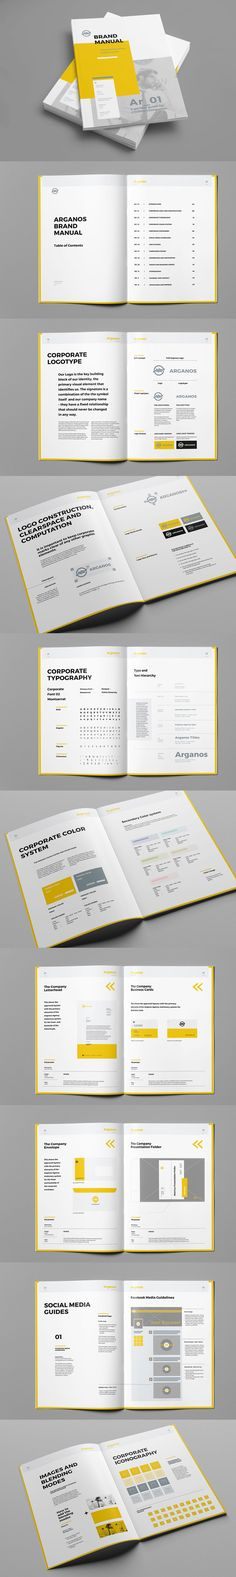 Professional Brand Manual Brochure Template InDesign INDD